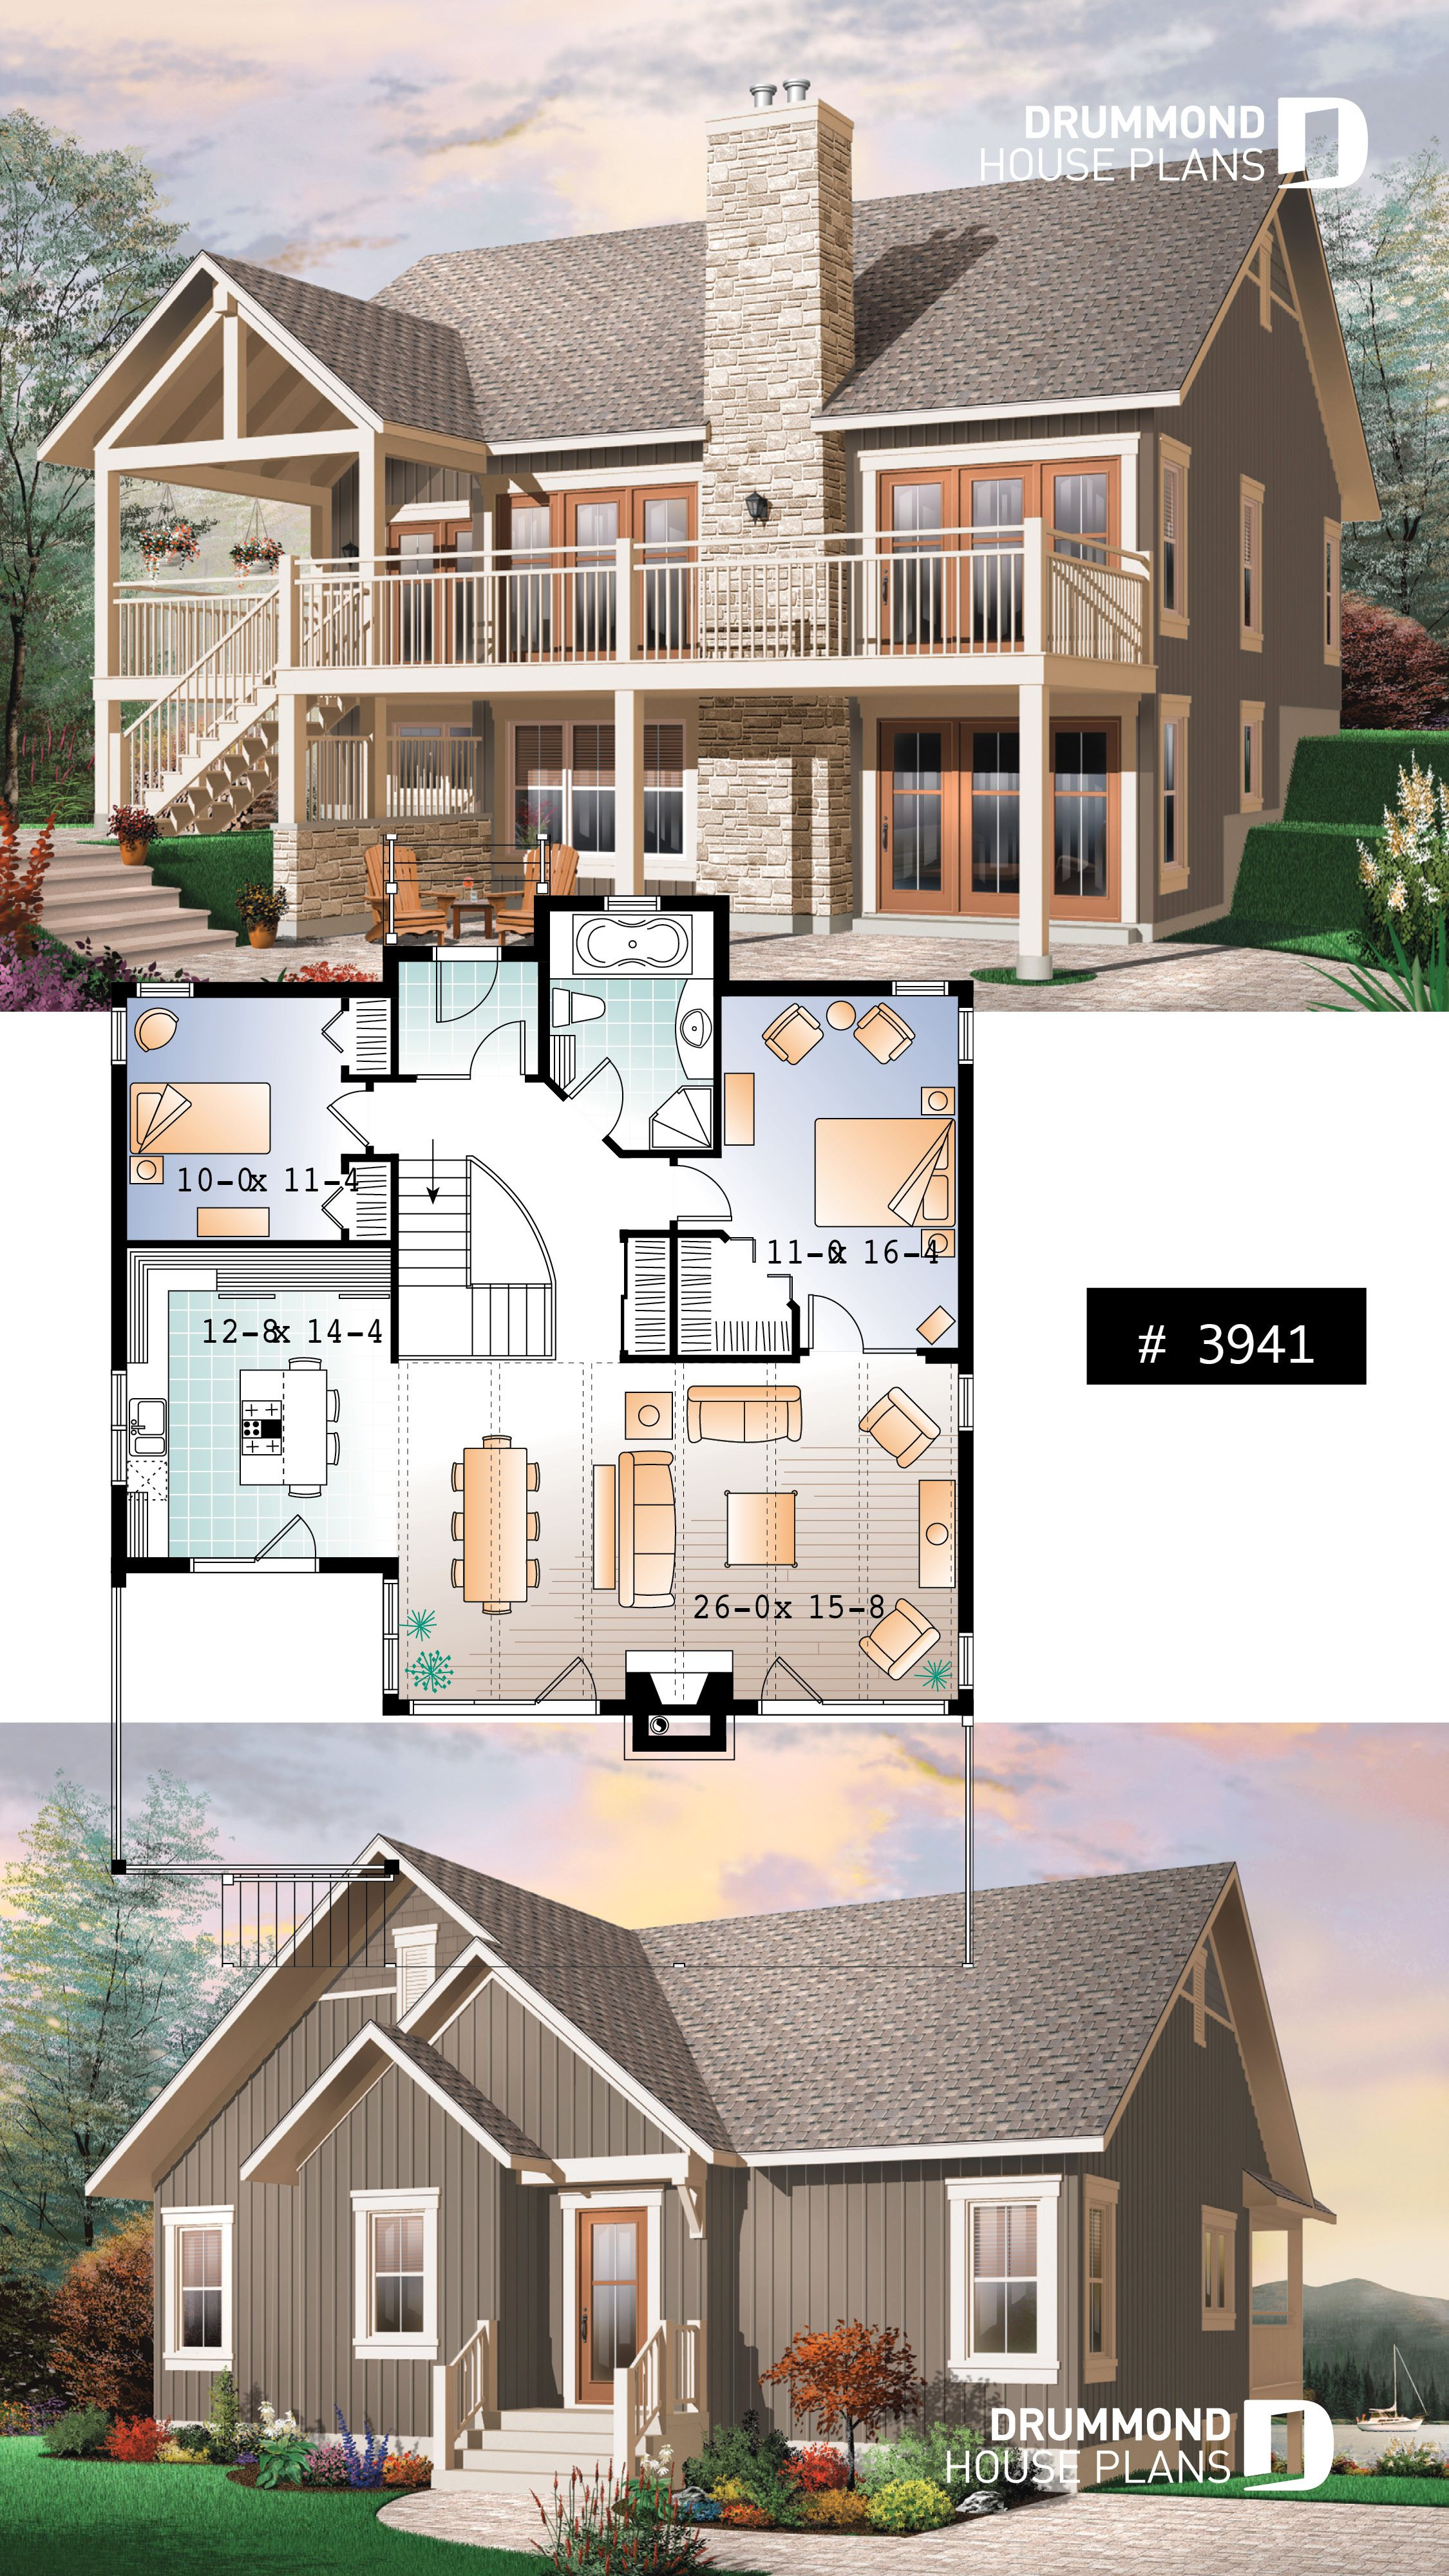 Discover The Plan 3941 Bay Breeze 3 Which Will Please You For Its 2 3 4 Bedrooms And For Its Country Styles Cottage House Plans Sims House Plans Craftsman House Plans